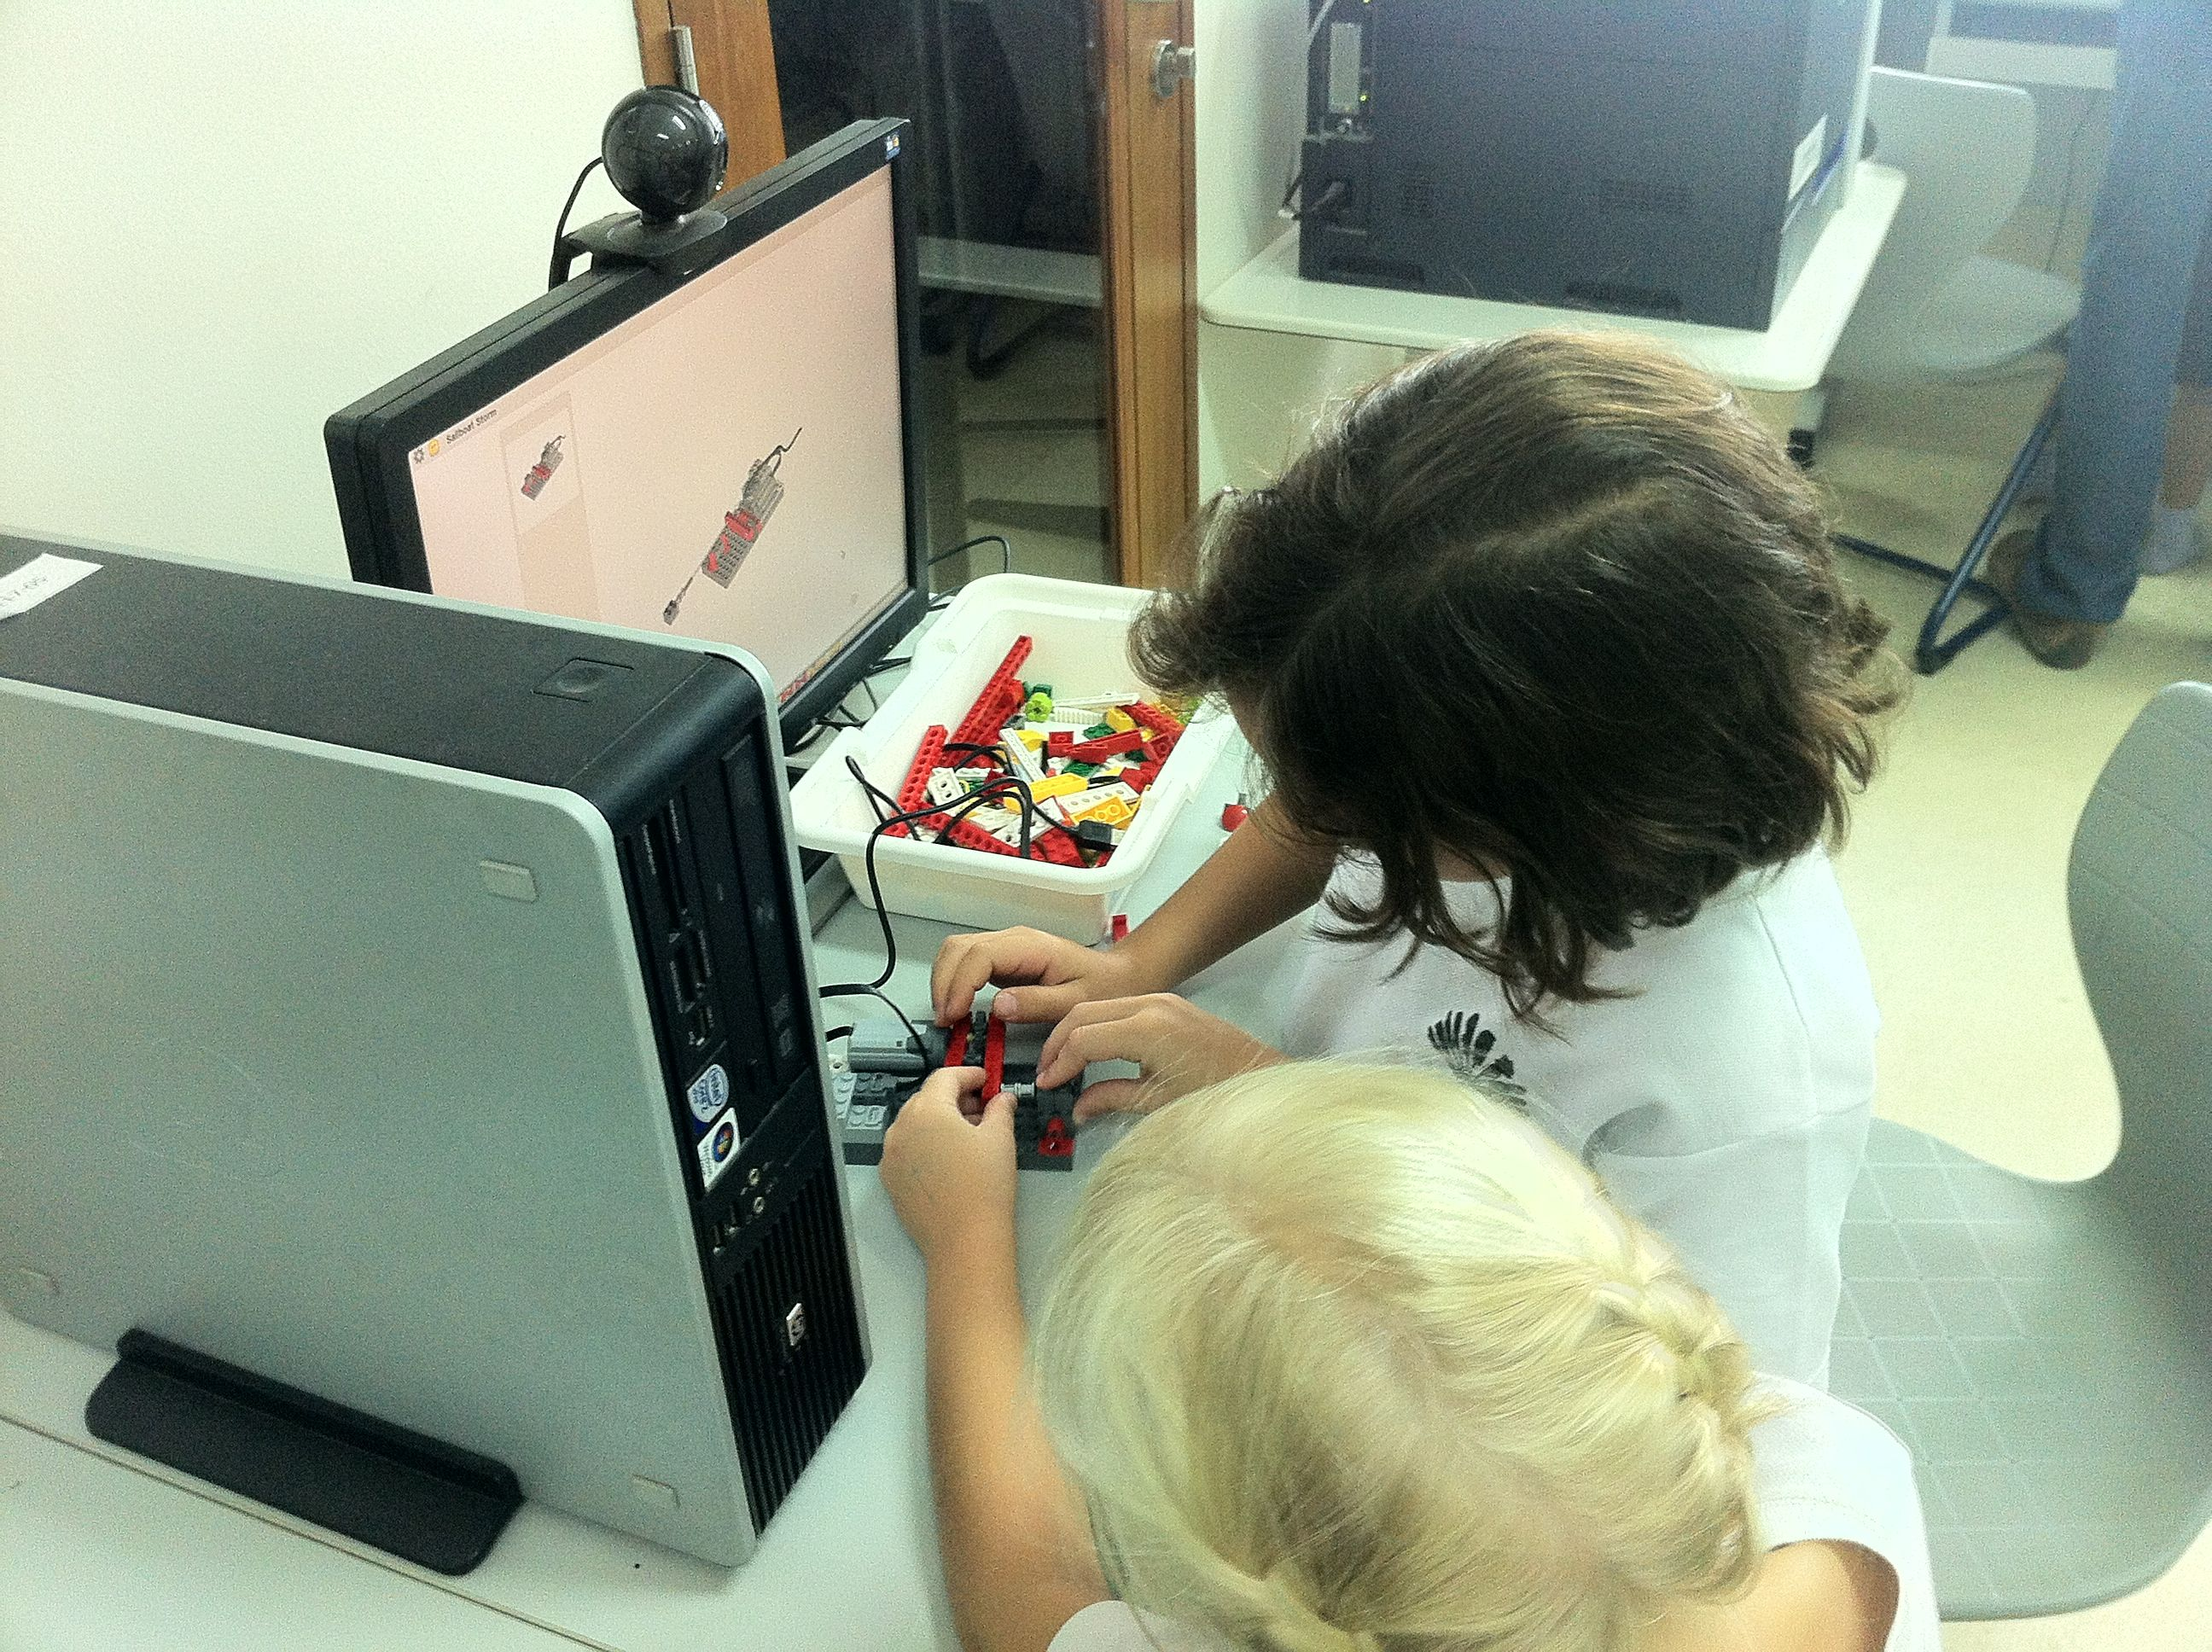 A pair of students sharing one WeDo kit.